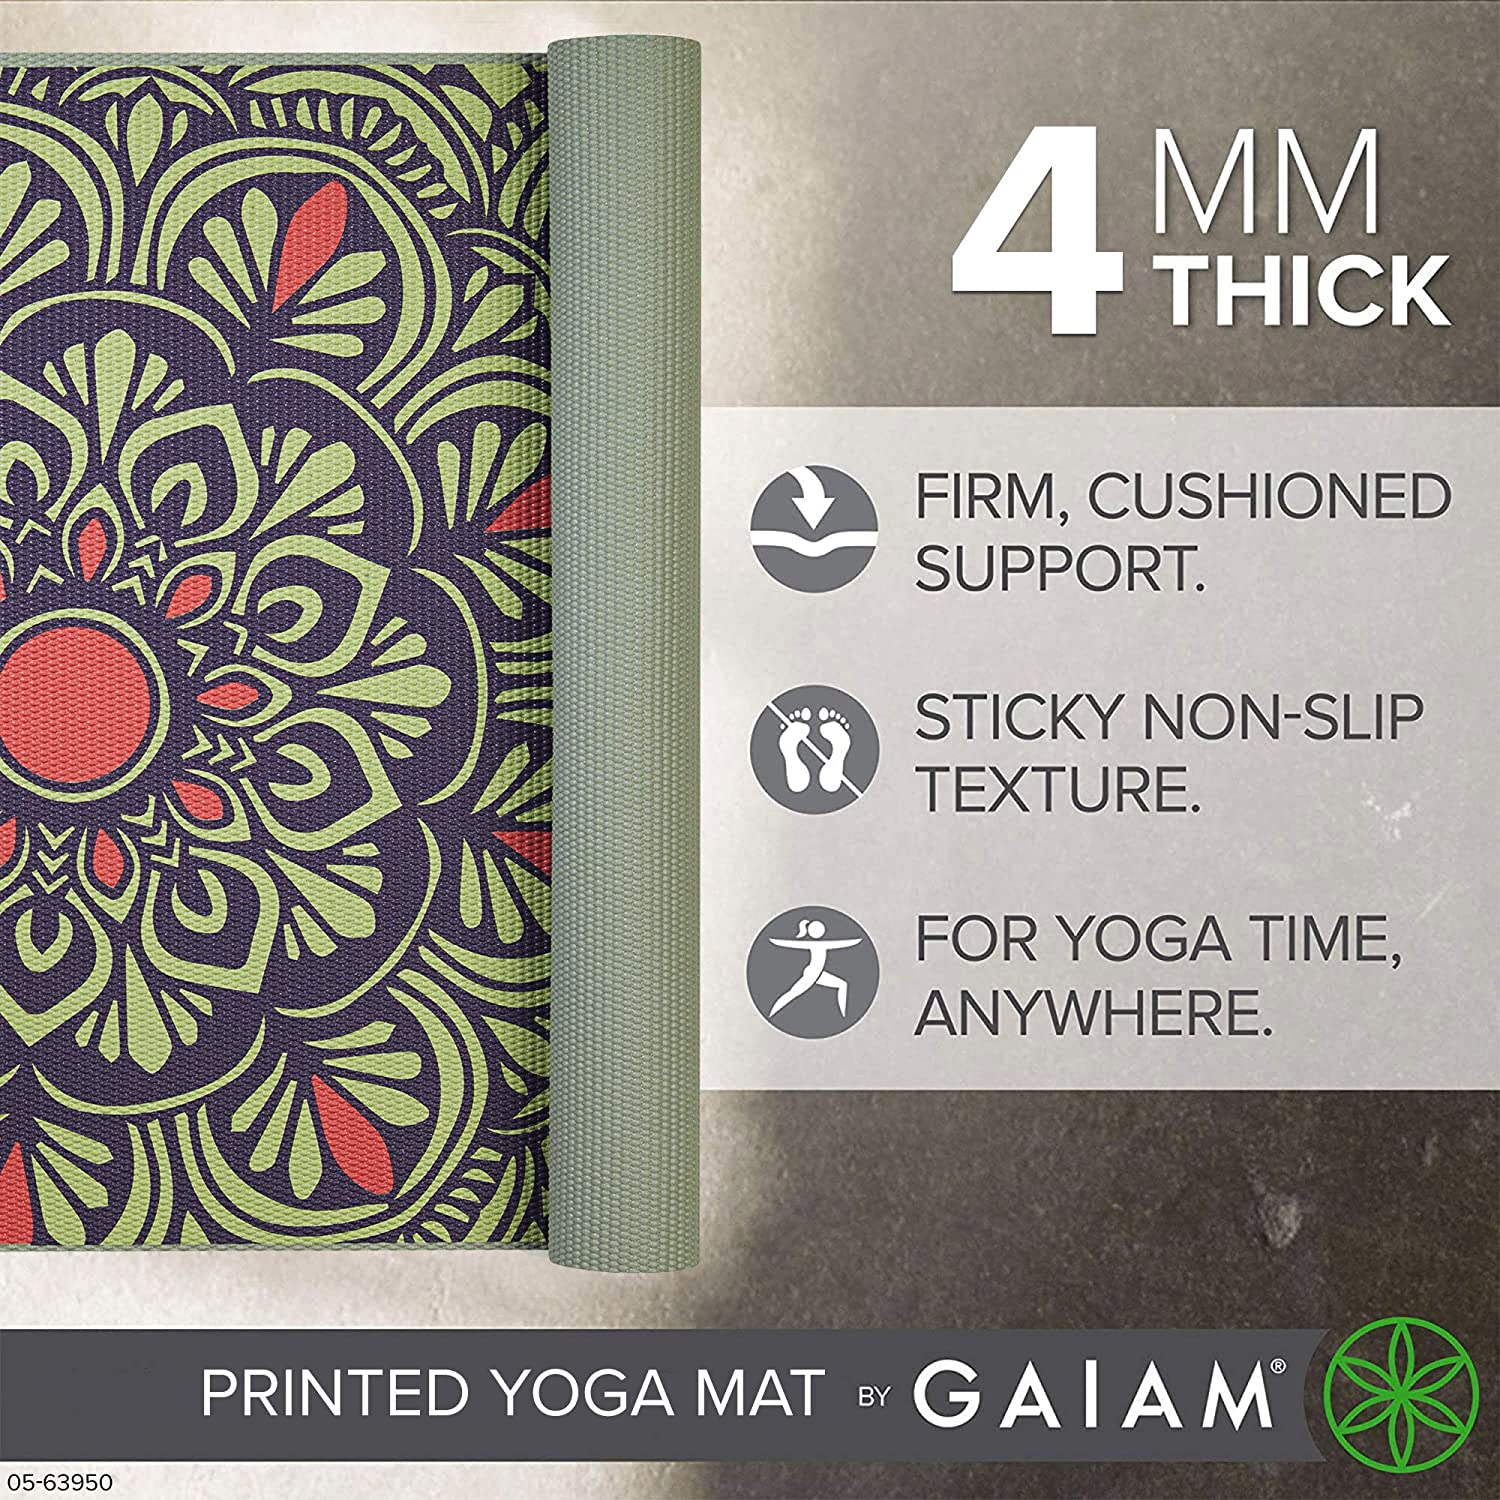 Gaiam Yoga Mat 68 x 24 x 4mm Classic 4mm Print Thick Non Slip Exercise /& Fitness Mat for All Types of Yoga Pilates /& Floor Workouts